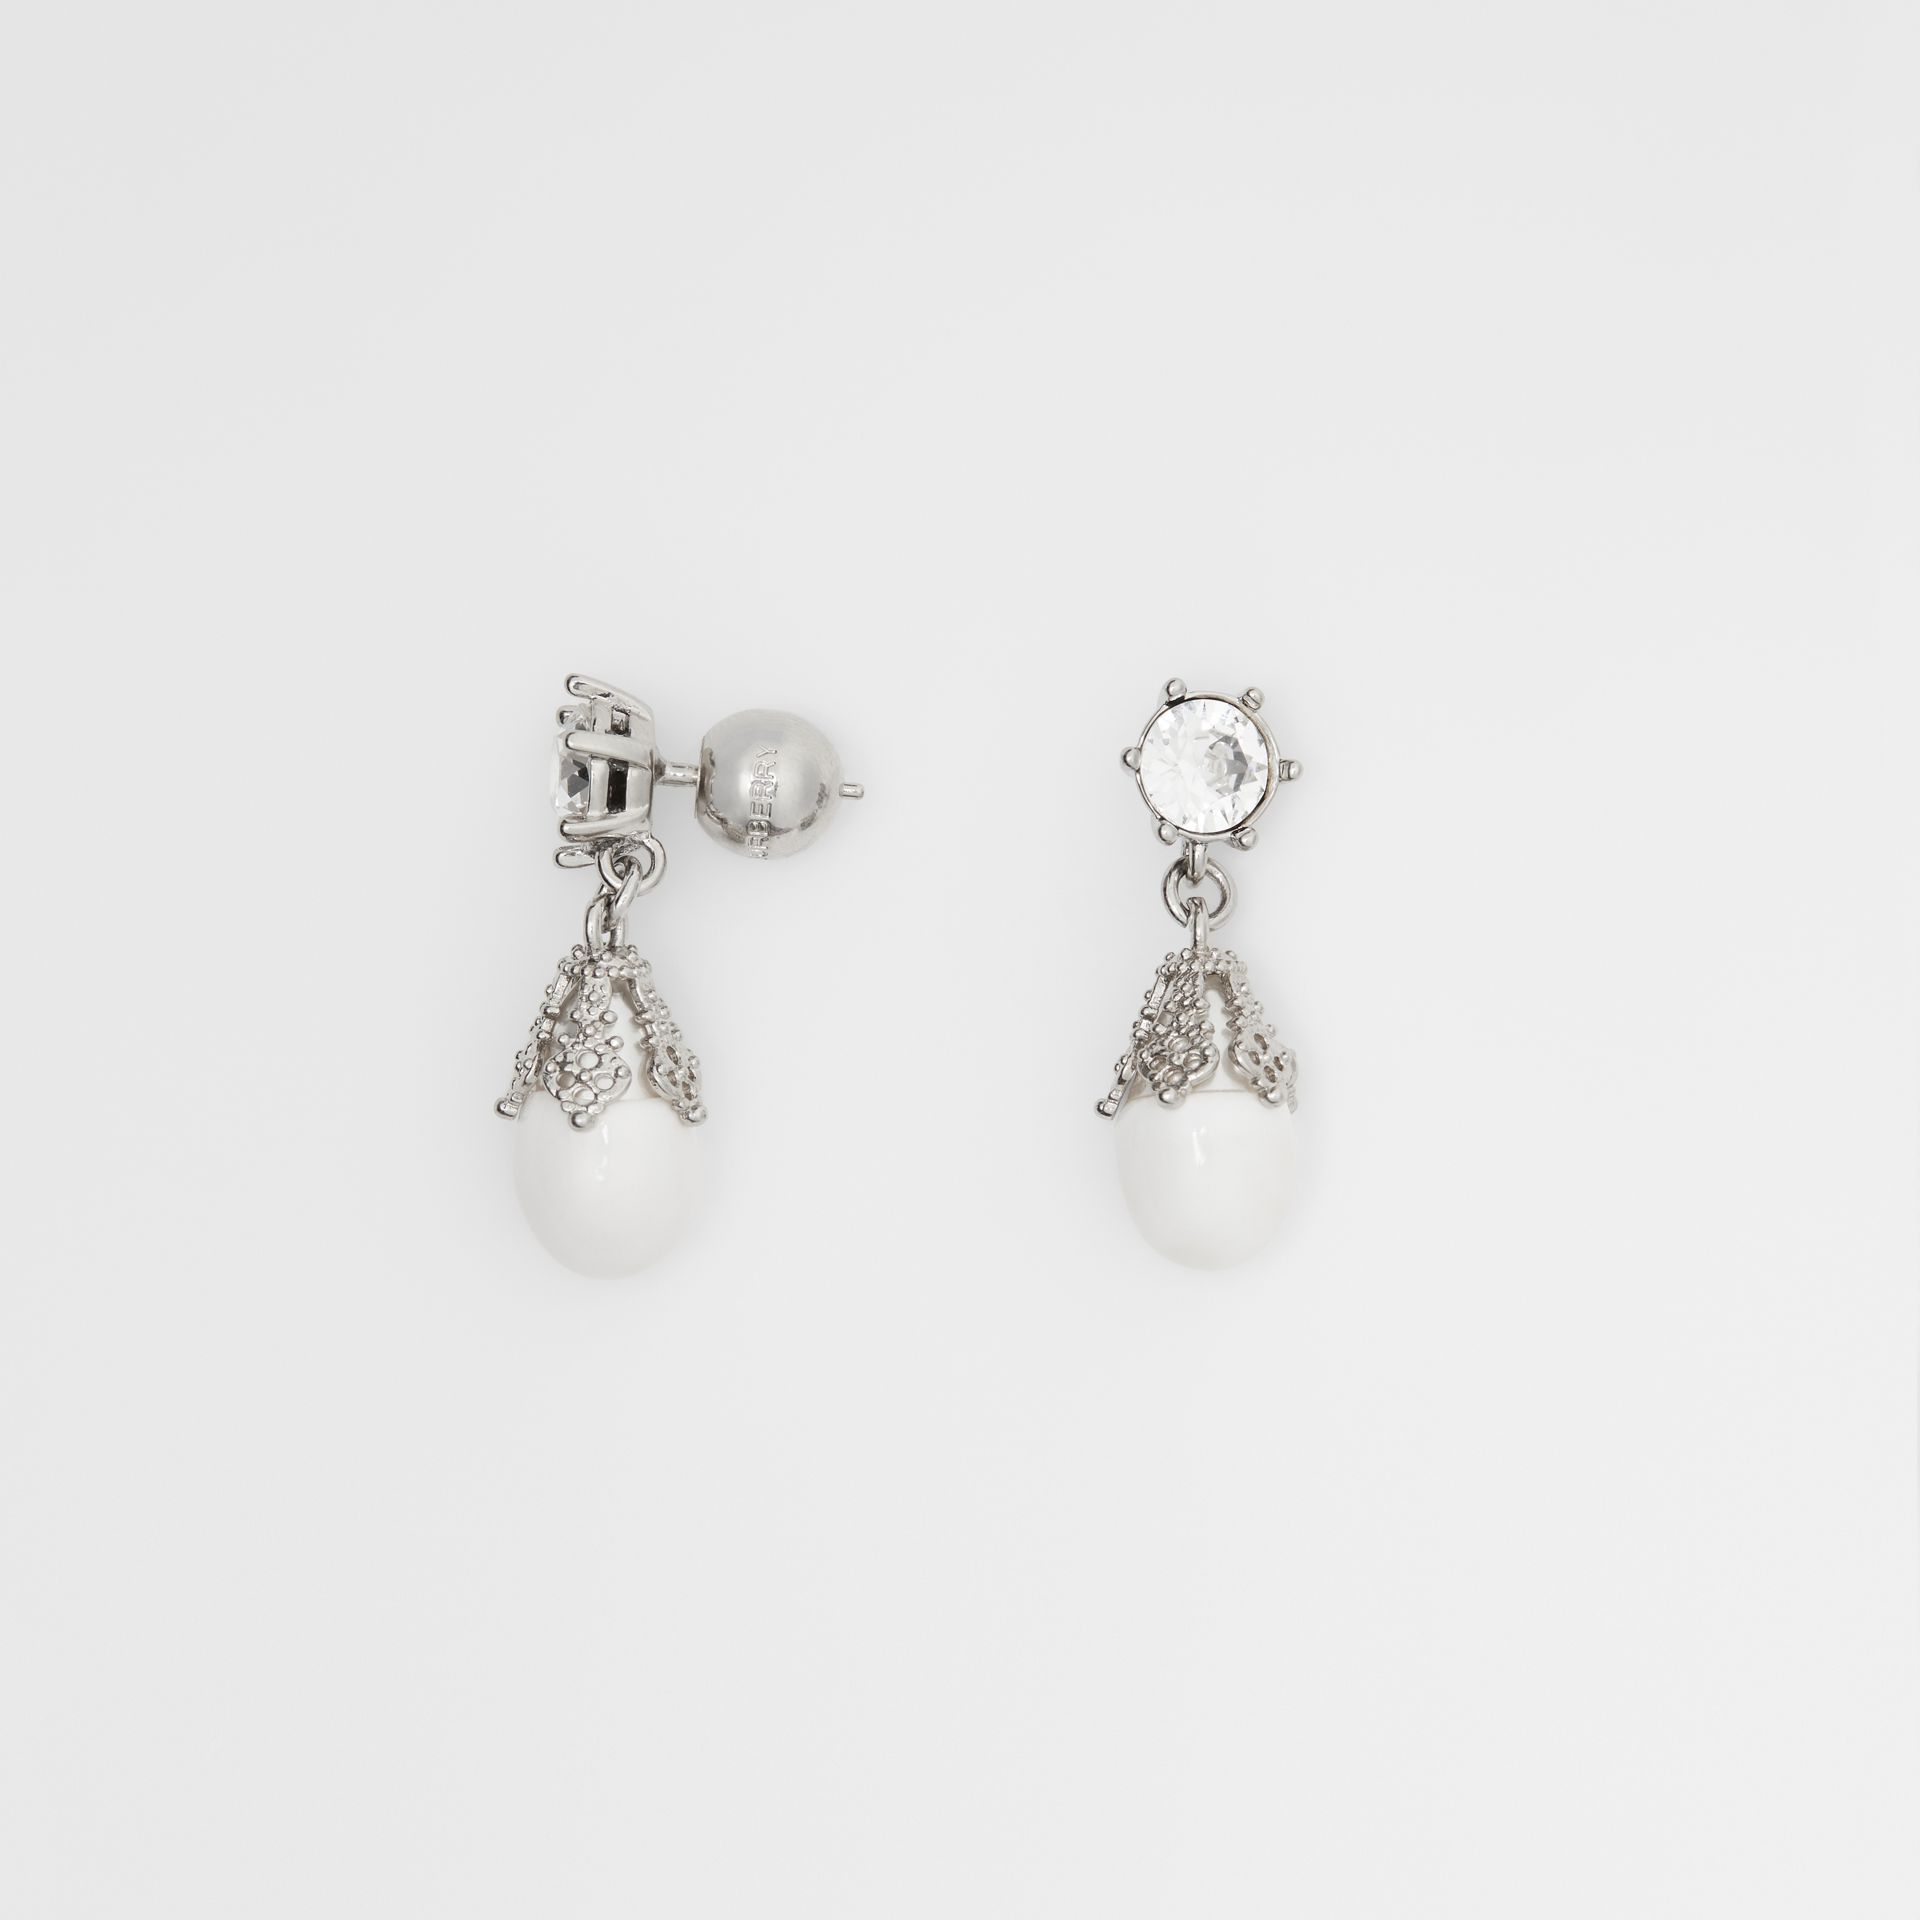 Palladium-plated Faux Pearl Charm Earrings in White/palladium - Women | Burberry Singapore - gallery image 3